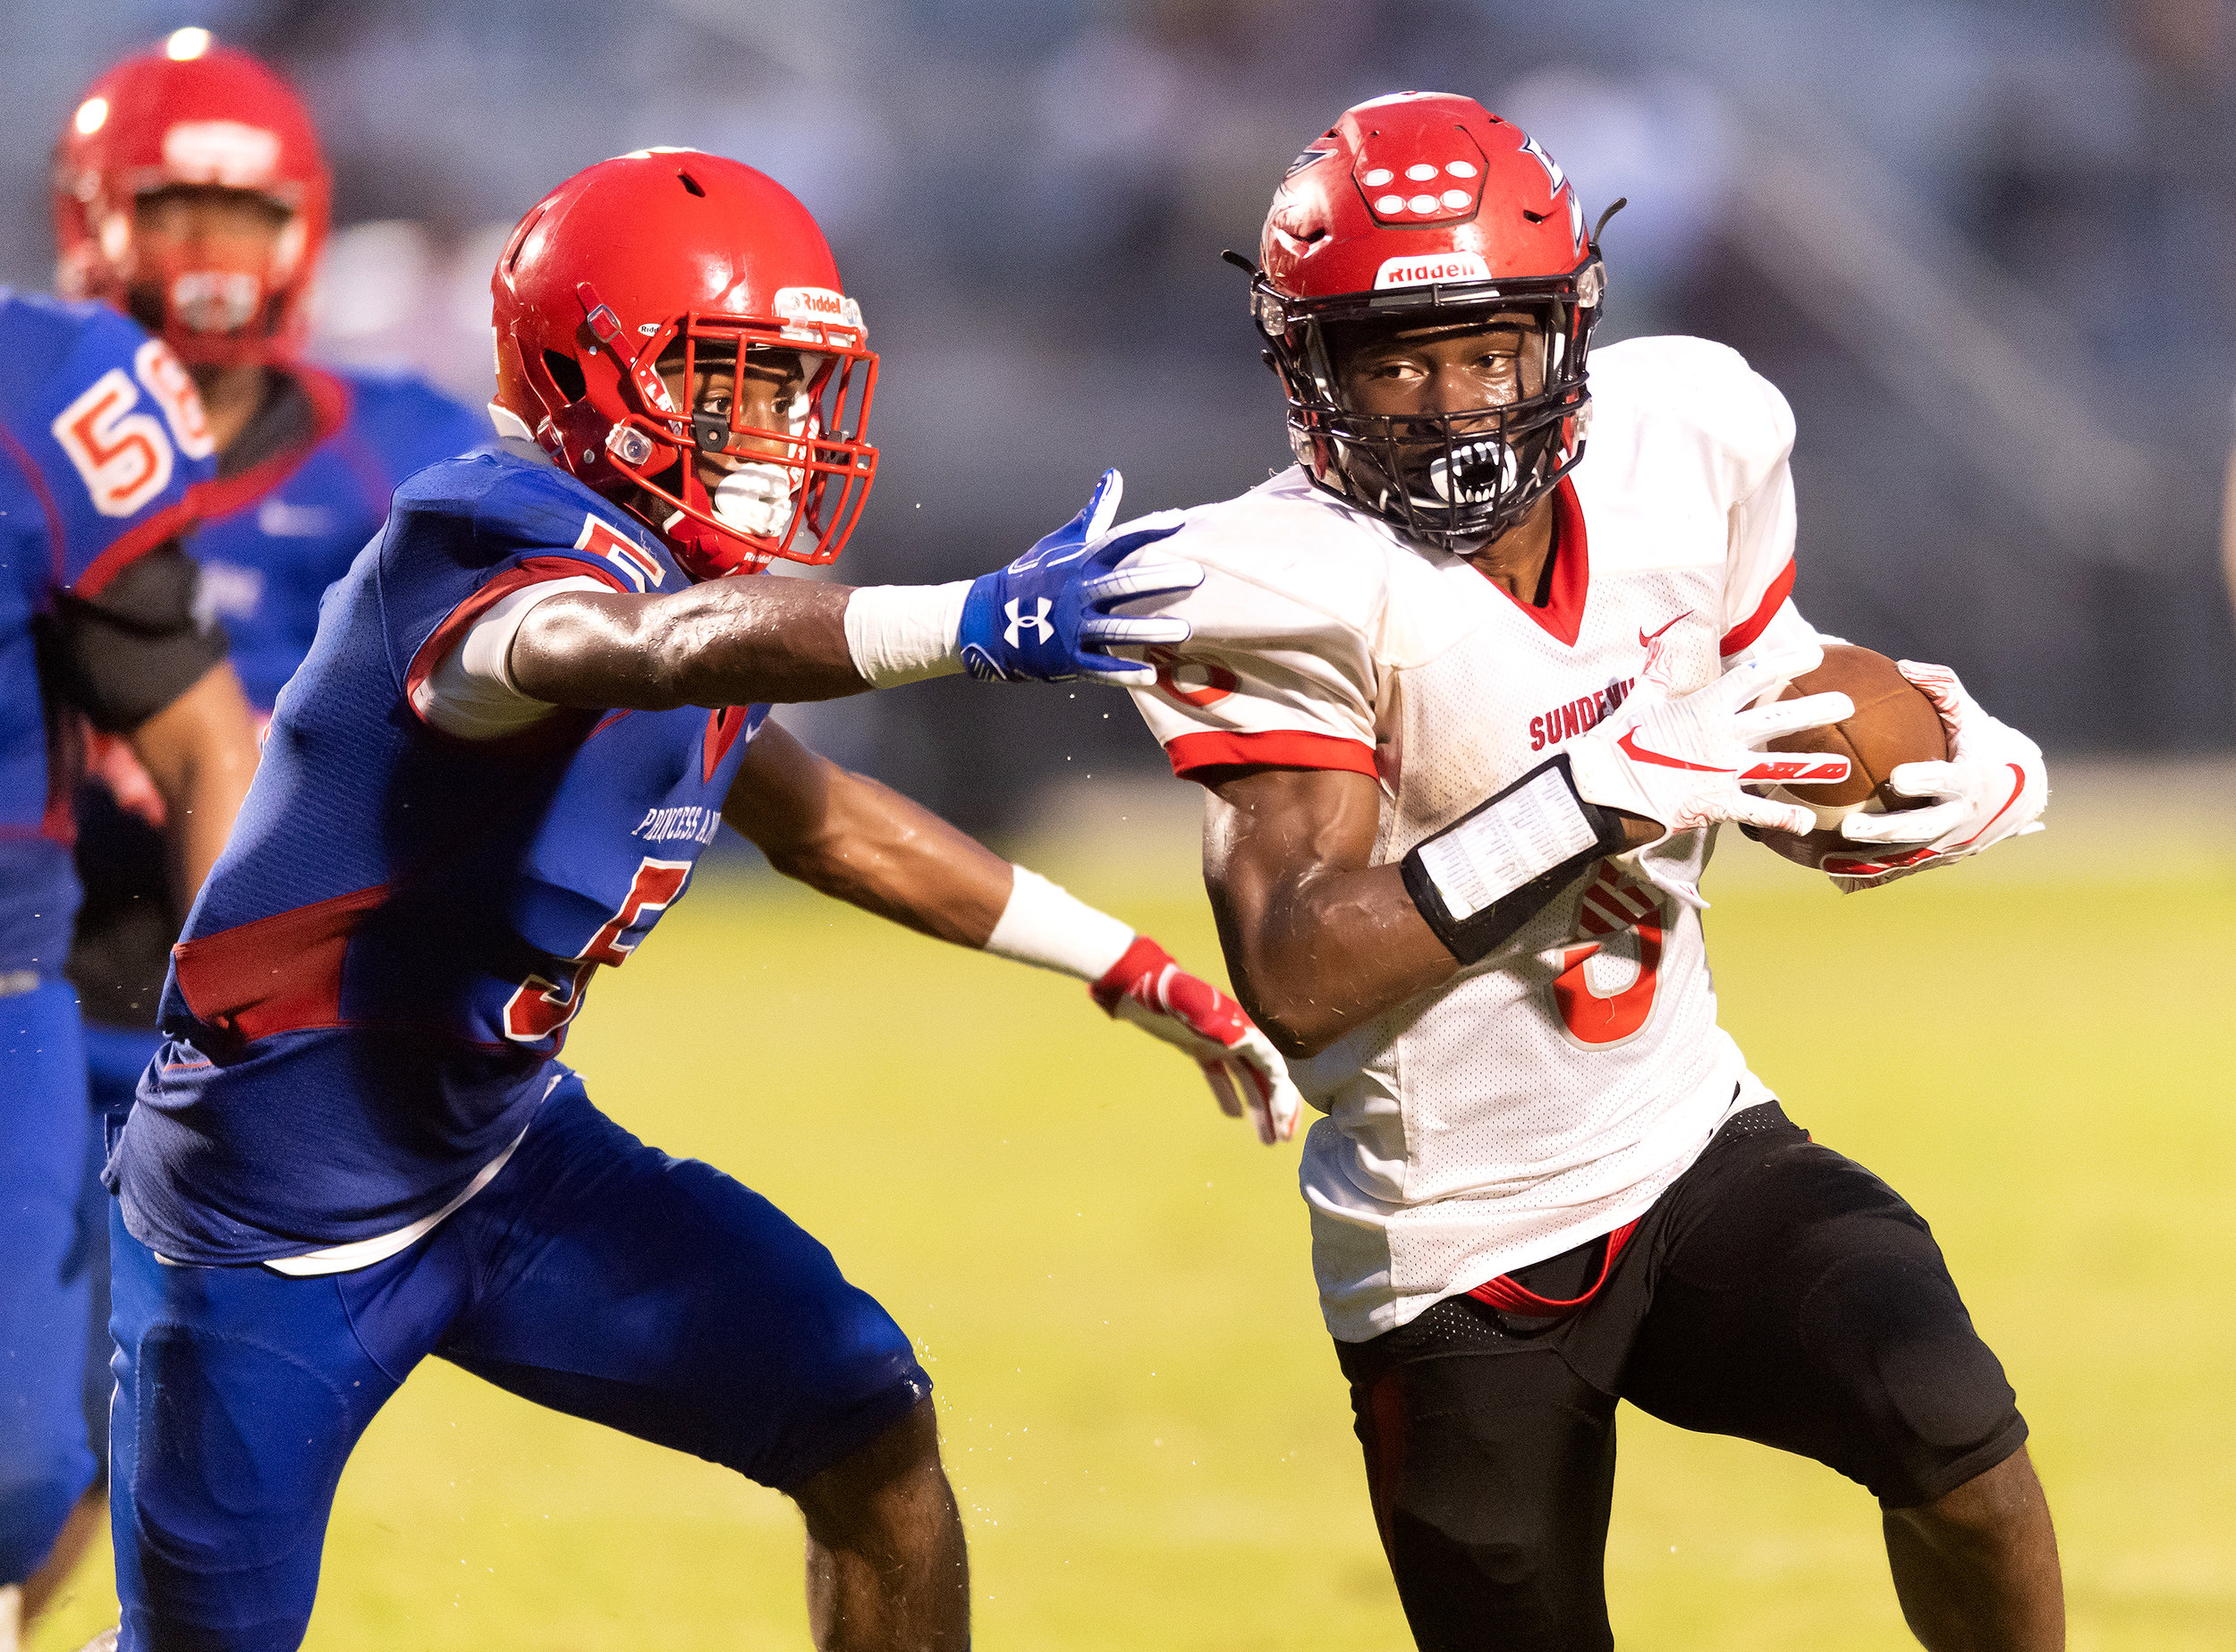 Game action from HS Football: Salem vs Princess Anne held on Thursday, August 30, 2018 at Princess Anne High School in Virginia Beach.